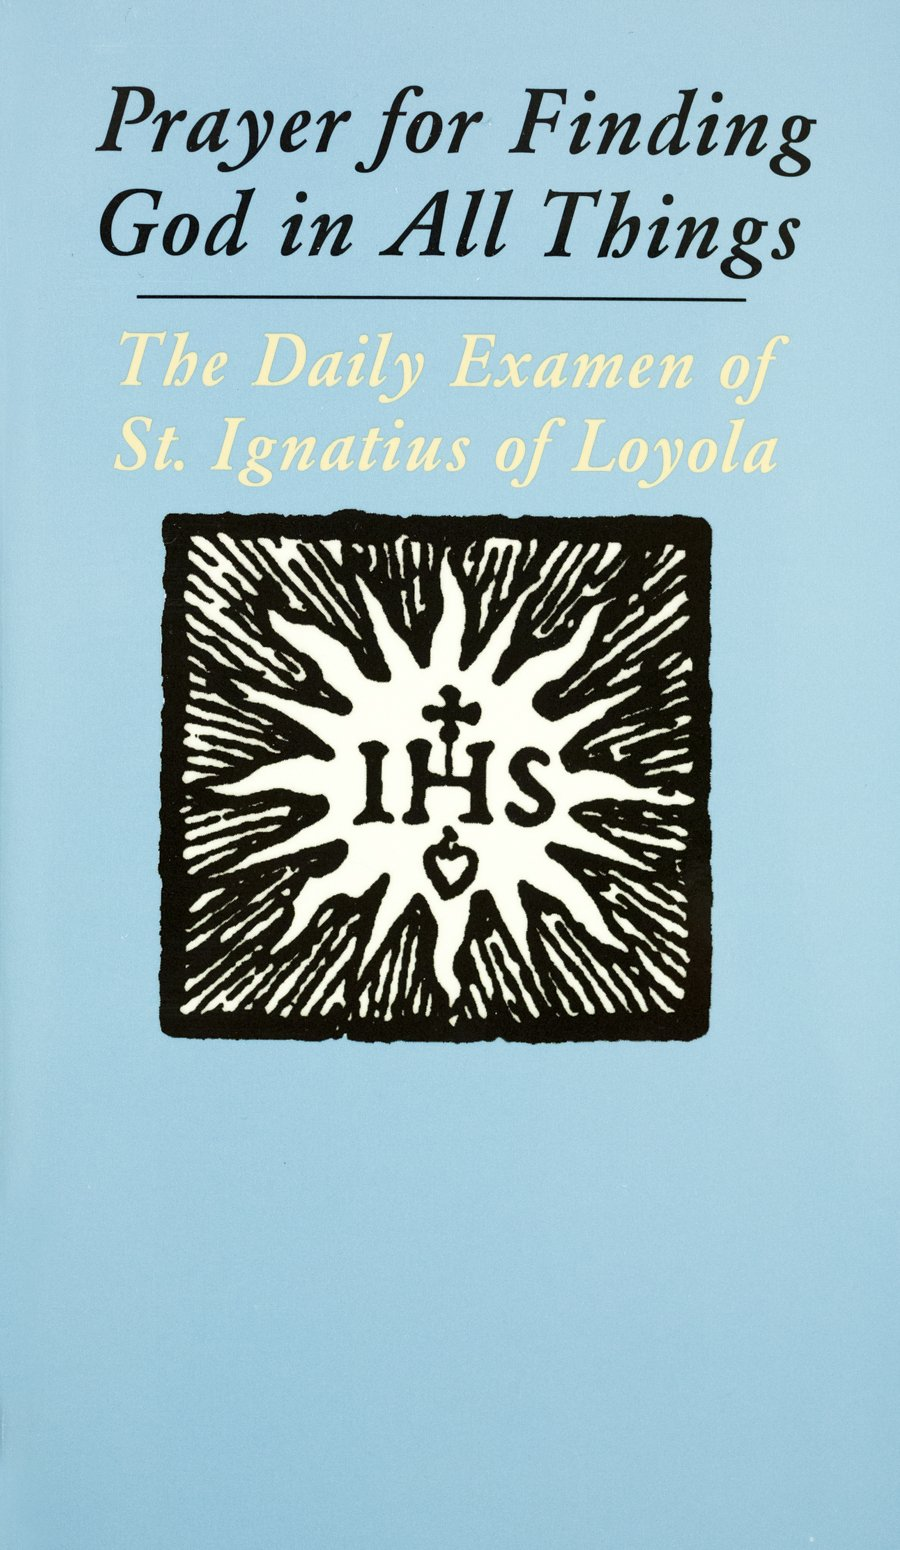 Prayer for Finding God in All Things: The Daily Examen of St. Ignatius of  Loyola: 9781880810637: Amazon.com: Books